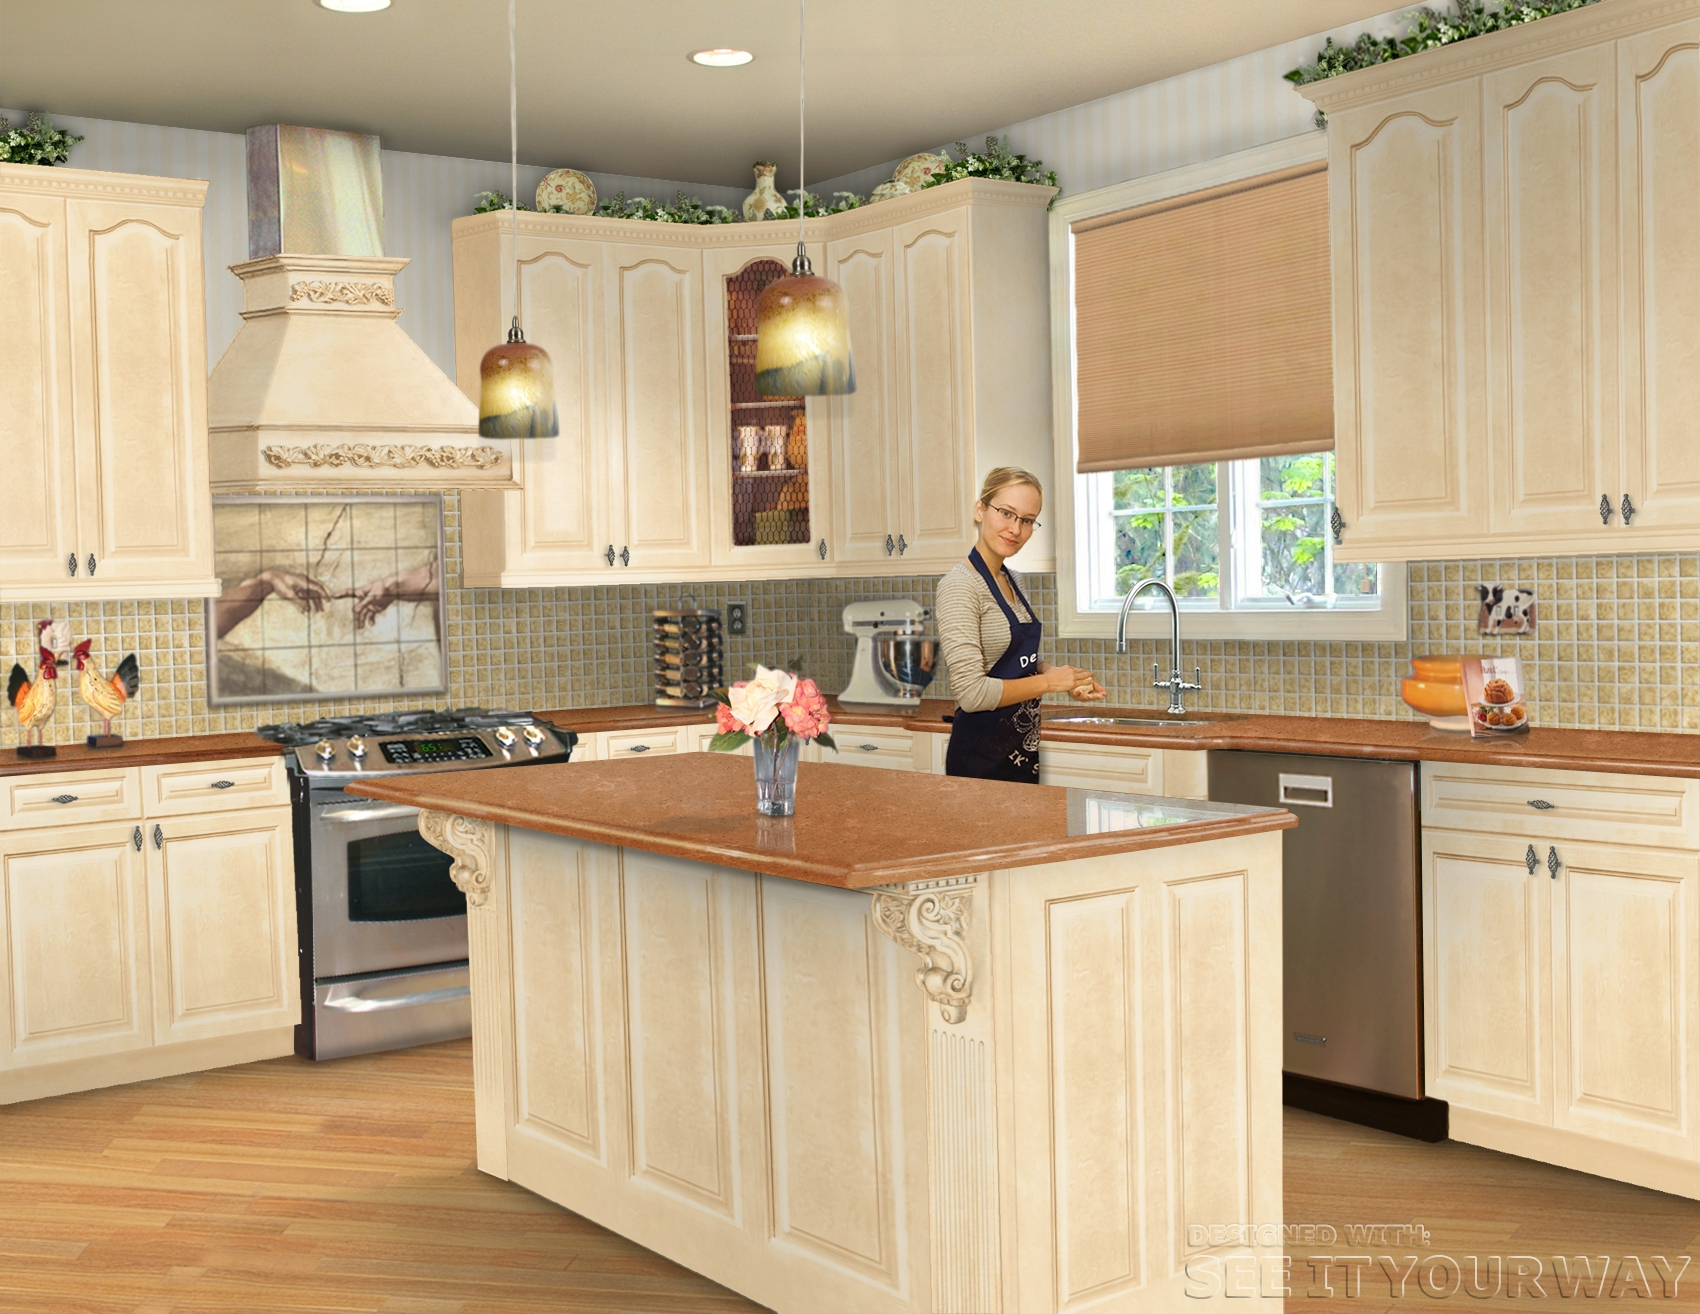 Kitchen Tune-Up Chooses Maytex Global For Room Design Tool